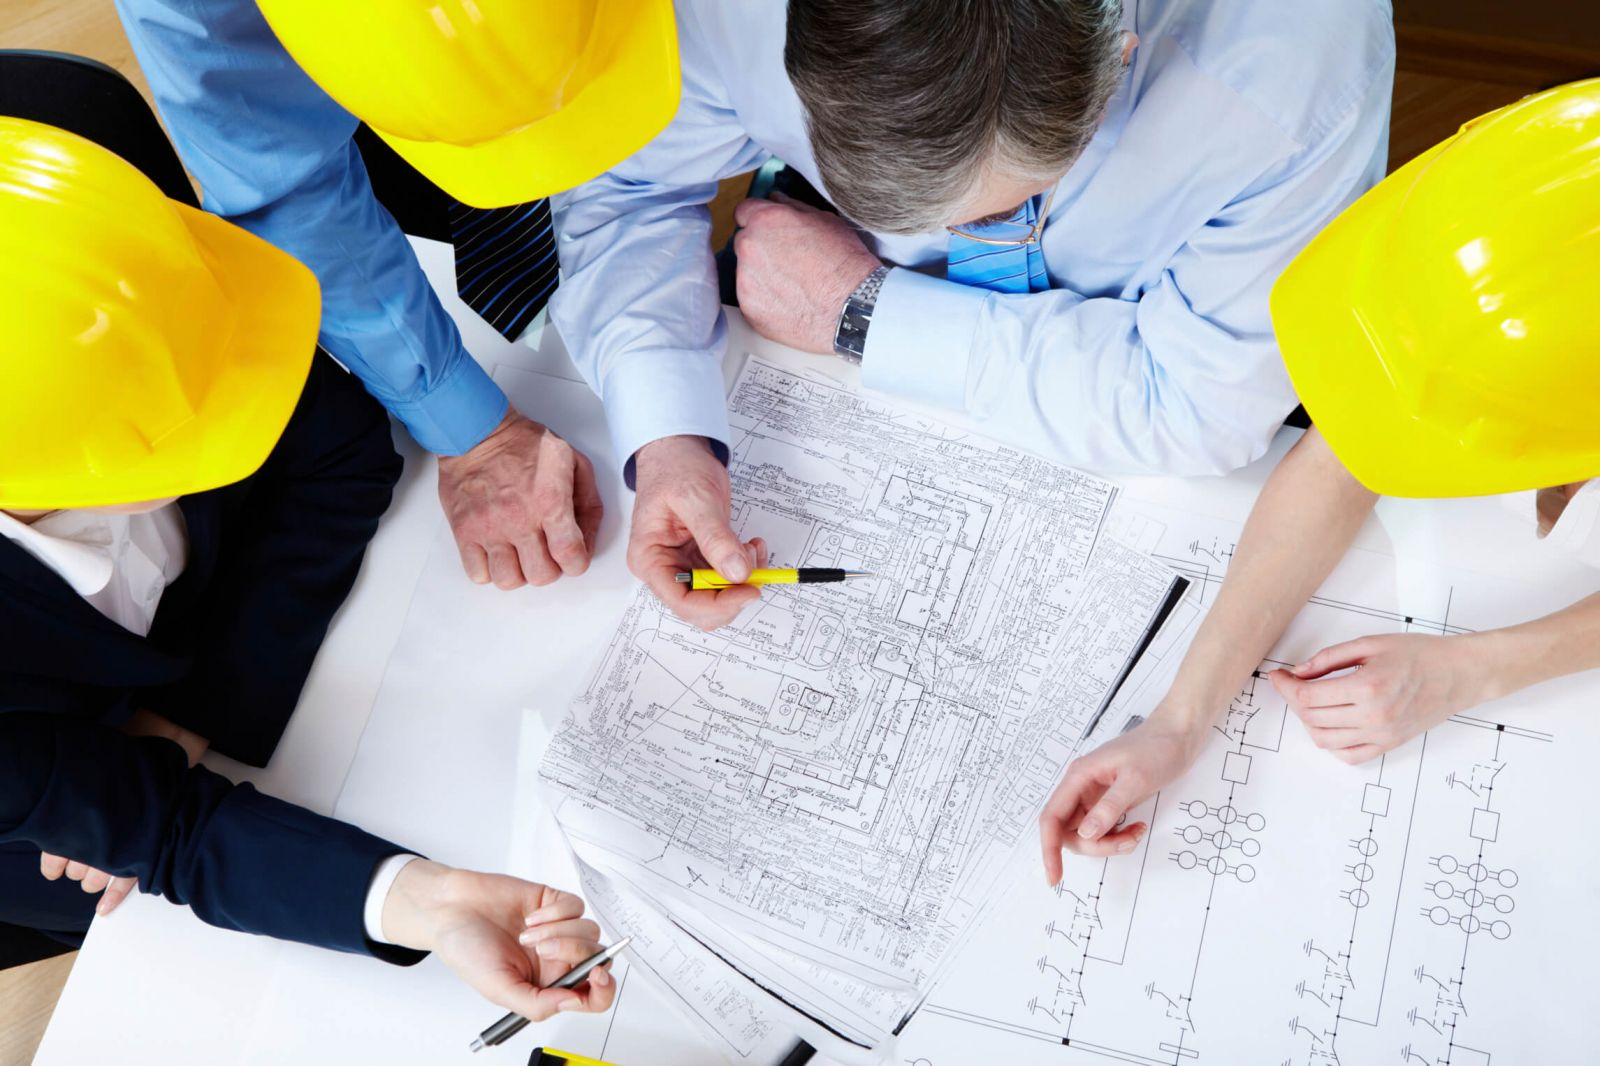 ame consulting engineers - HD1600×1066